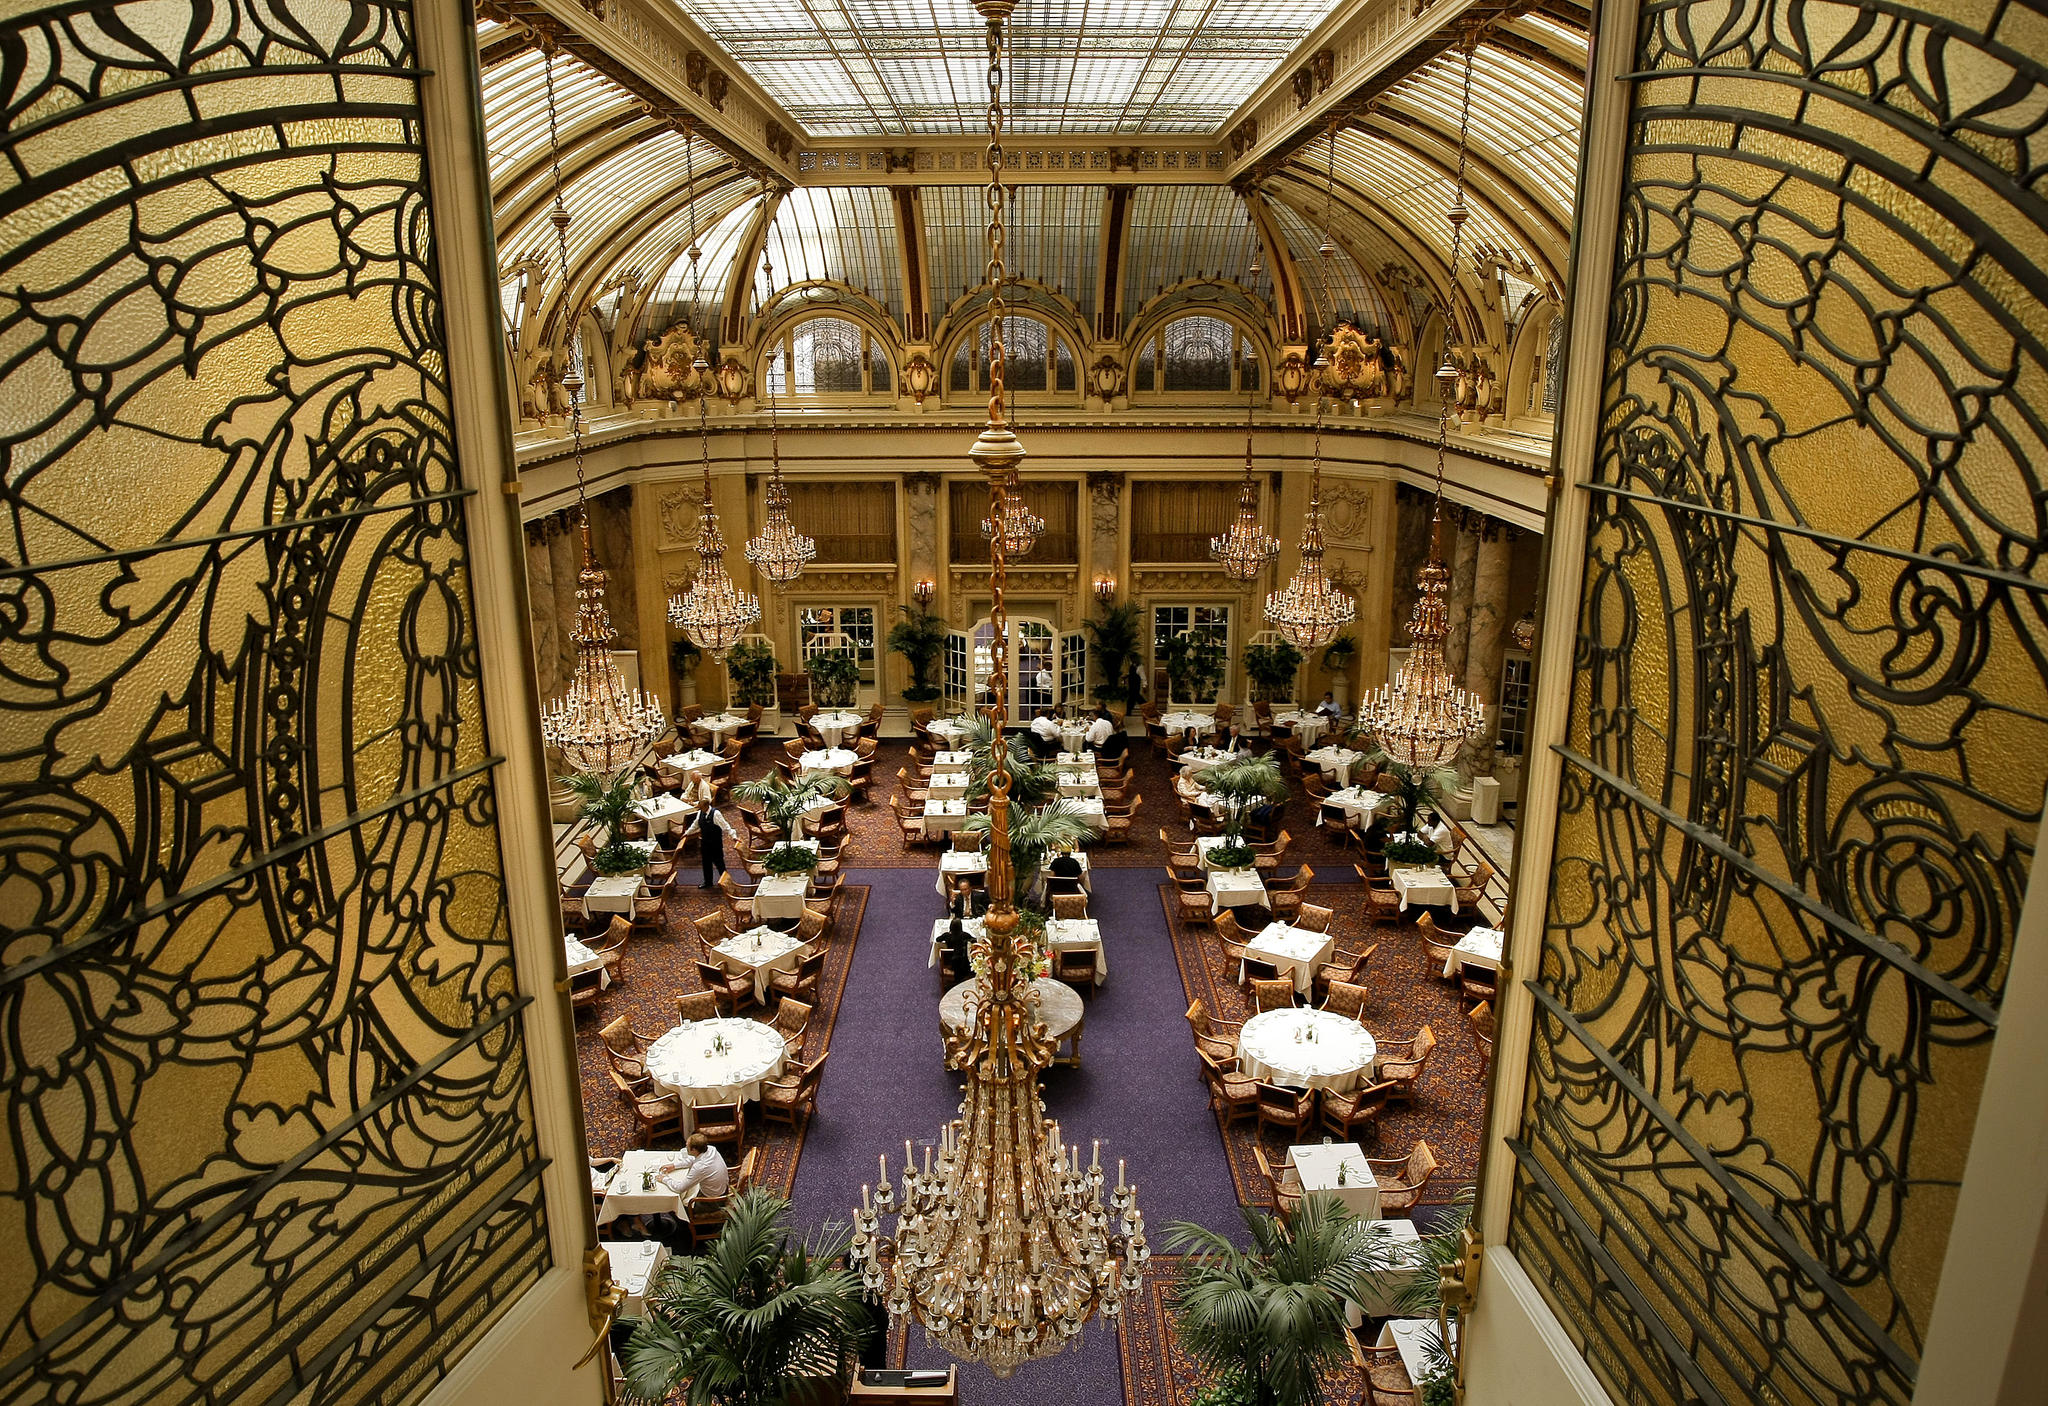 Beautiful inside view of the hotel.